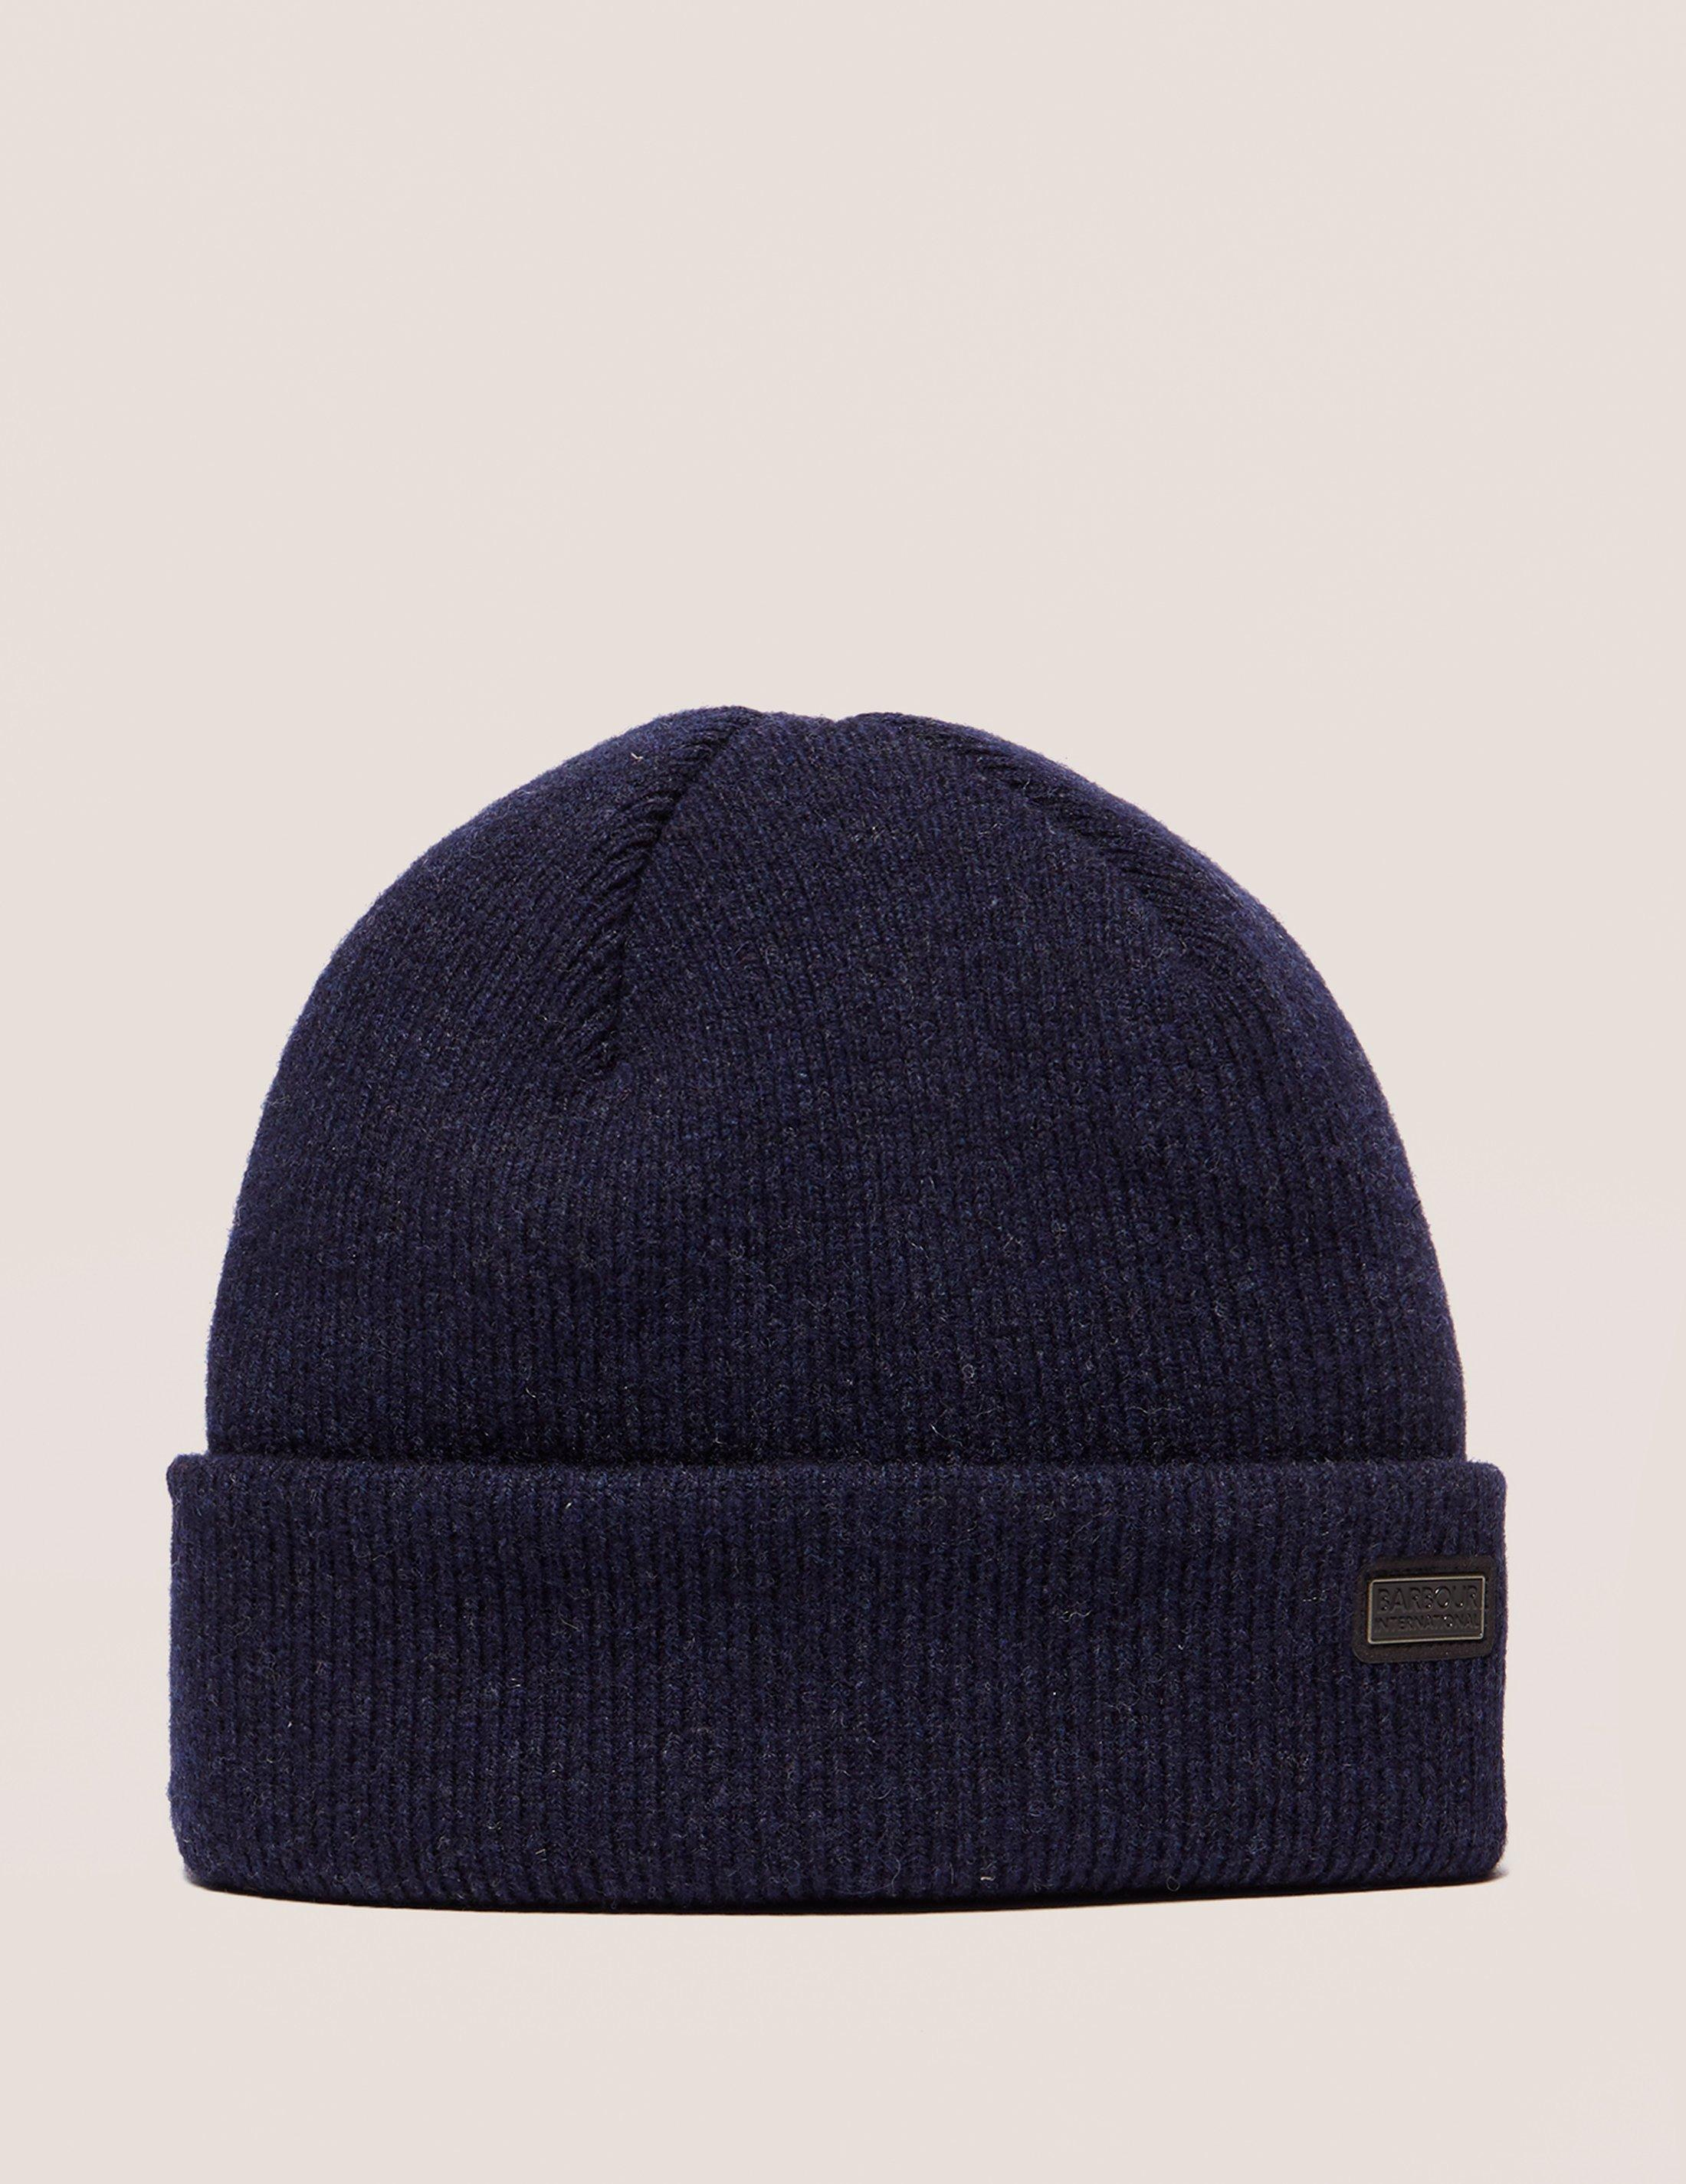 Barbour Mens International Watch Knitted Beanie Navy Blue in Blue ... a4f90aeb2a3a